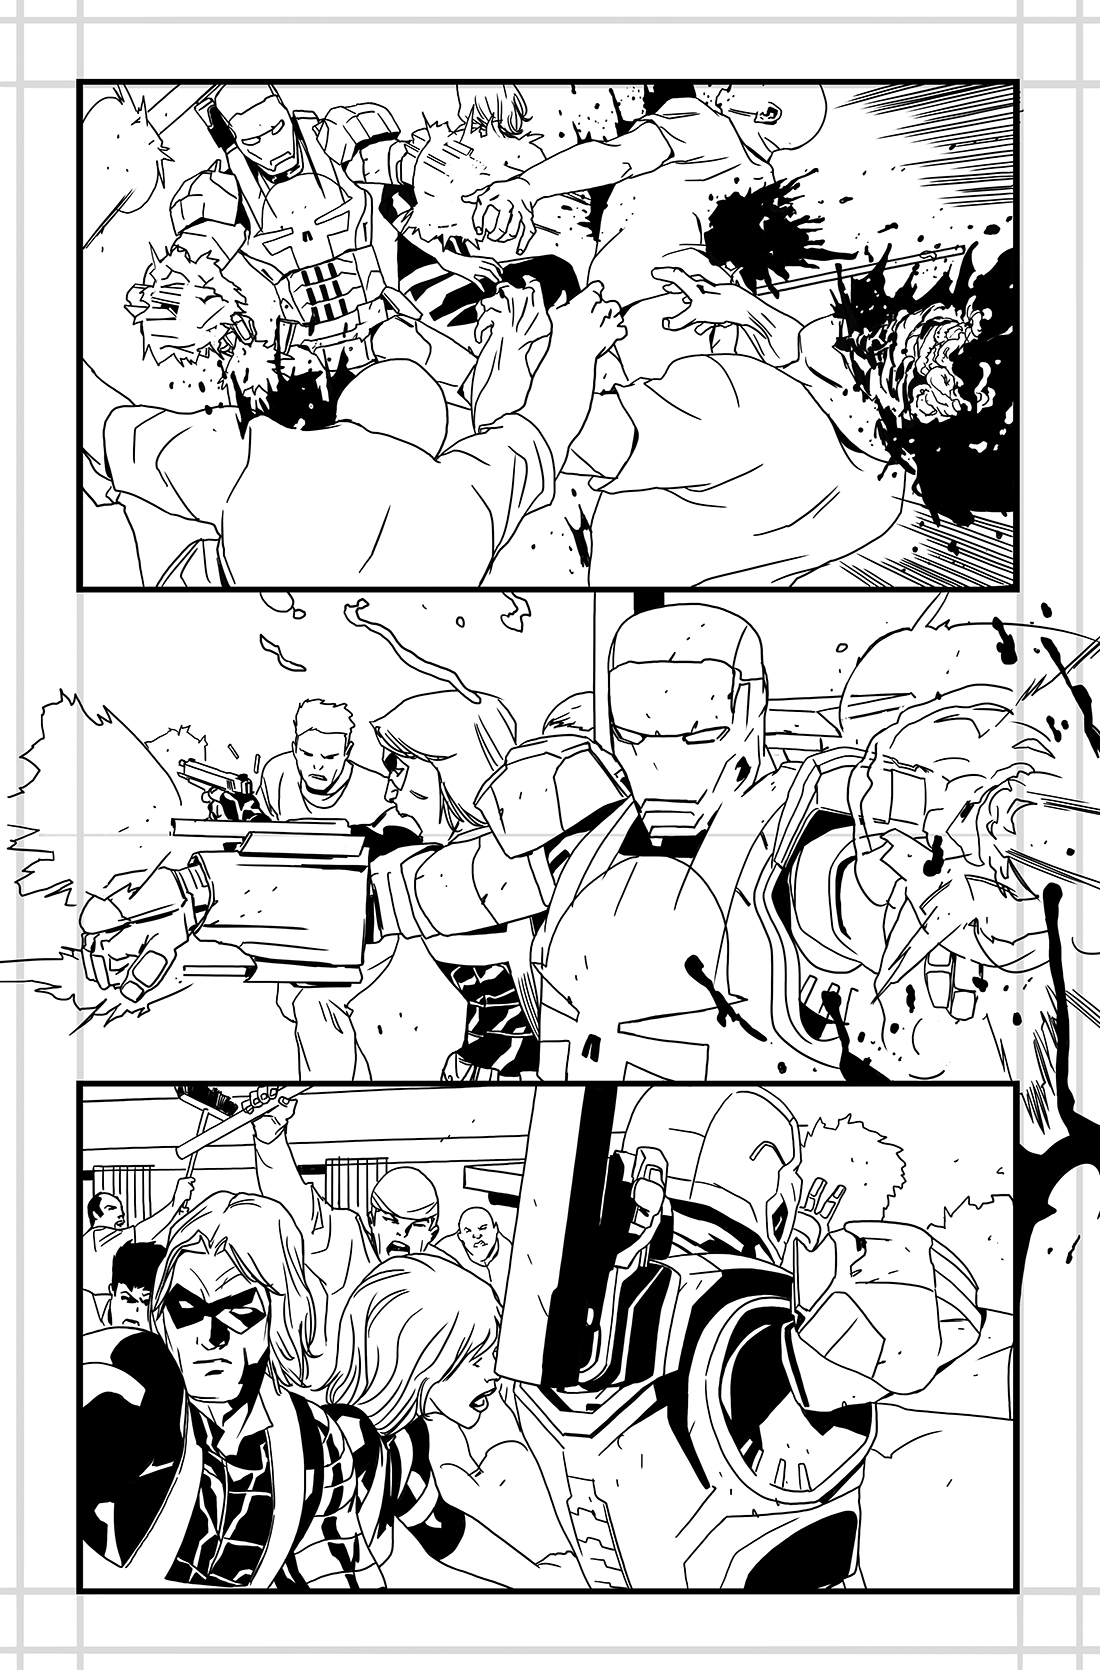 The Punisher #227 - page 13